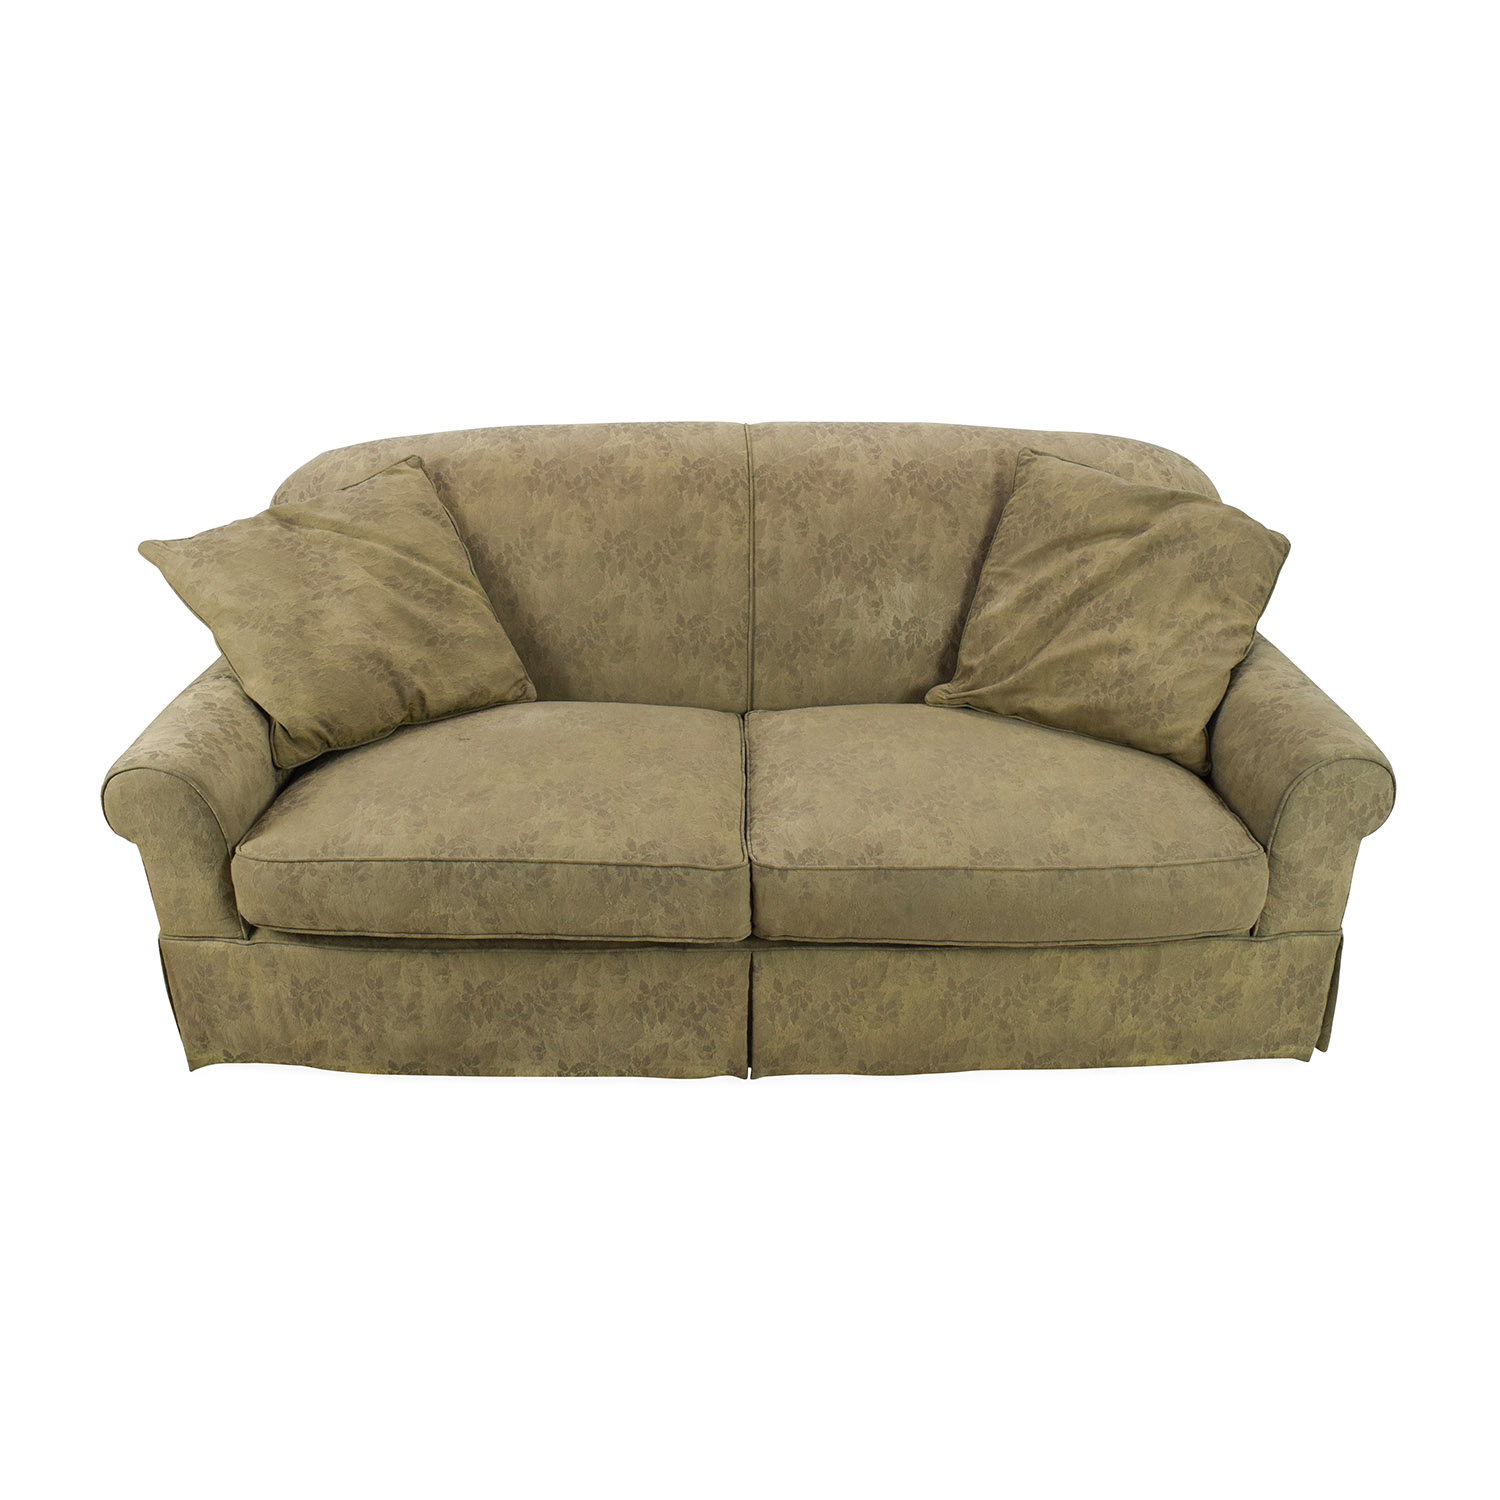 Comfy Classic Couch coupon